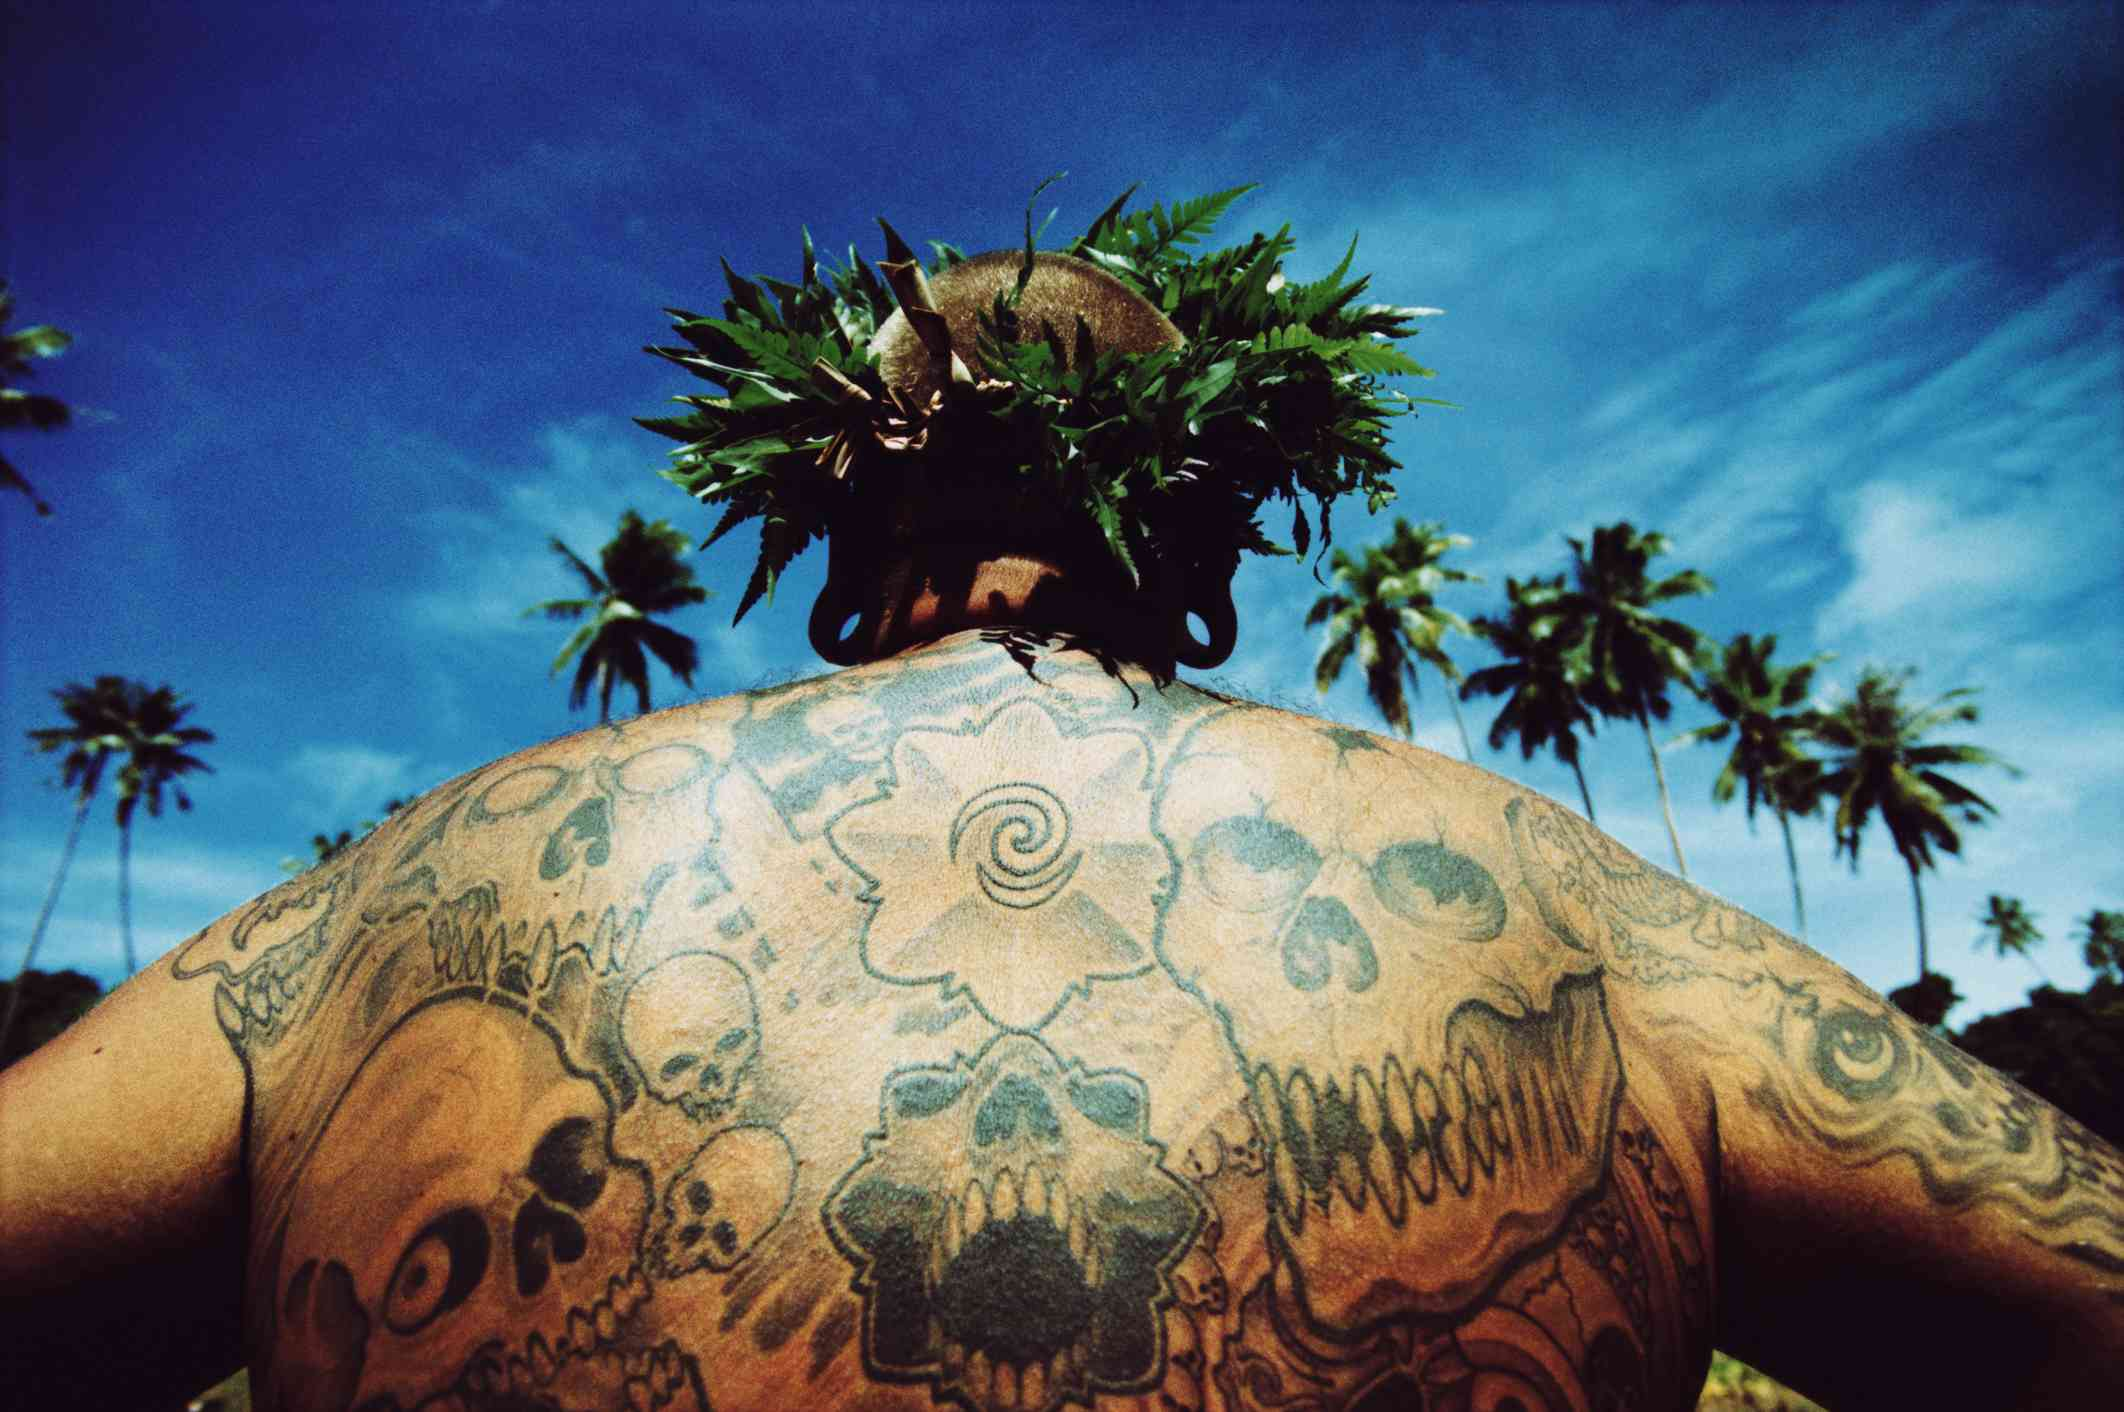 Tahitian man with body tattoo and fern crown on his head